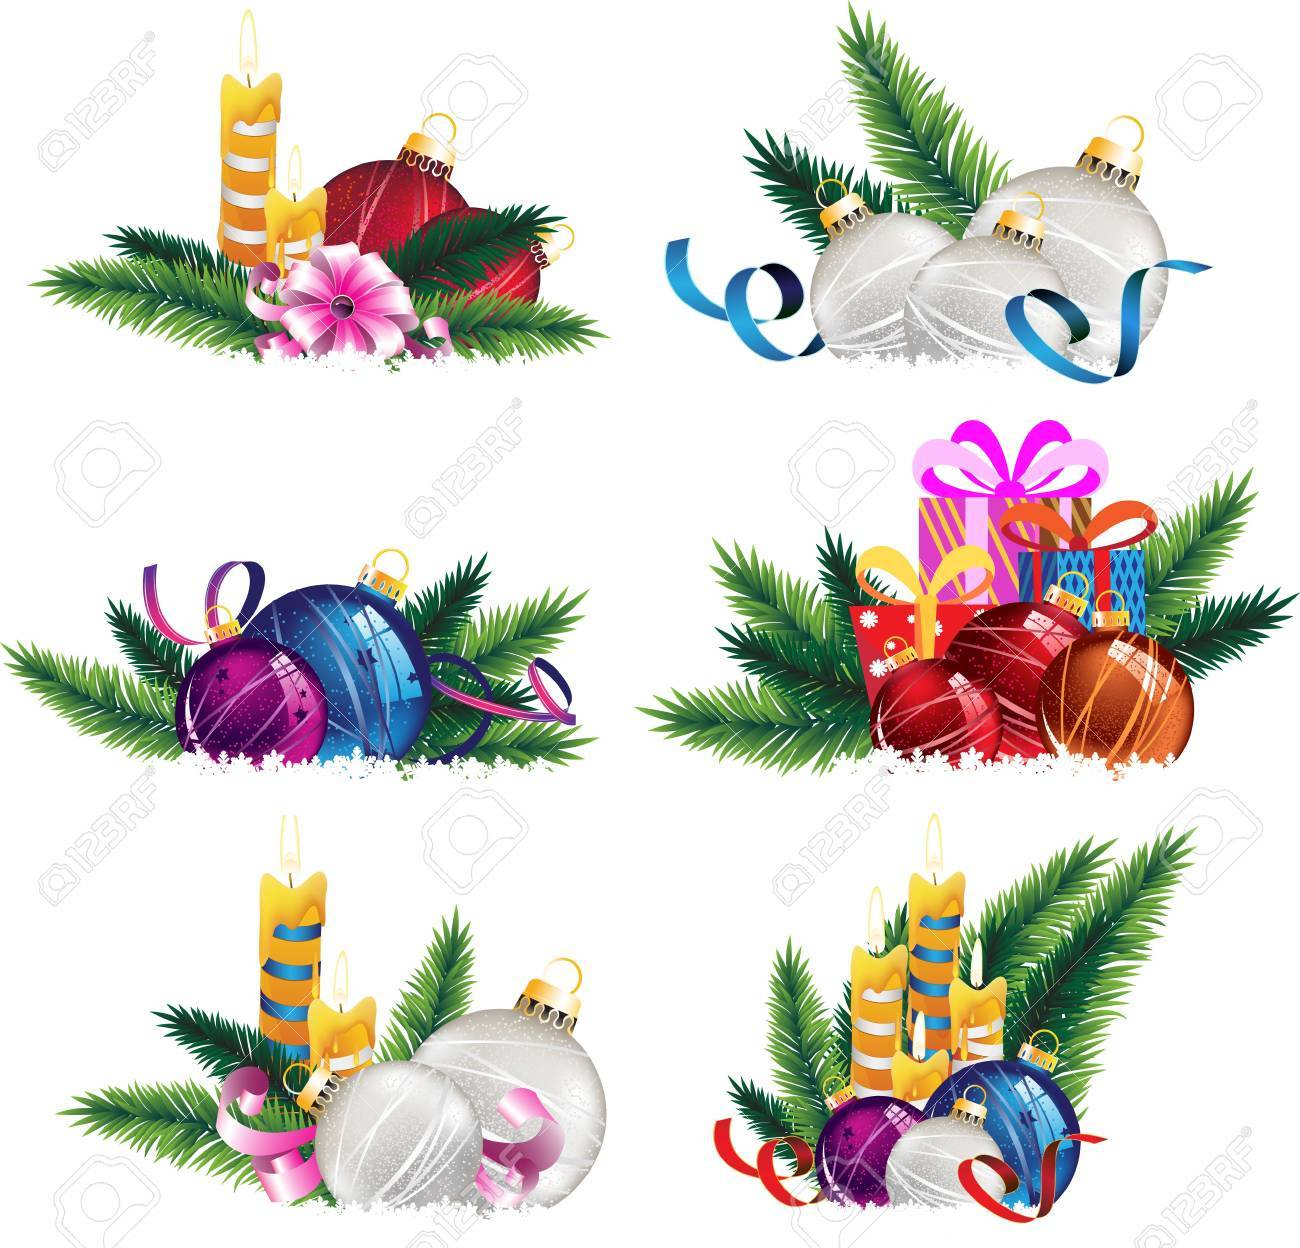 Set of Christmas and New Year - 16704553